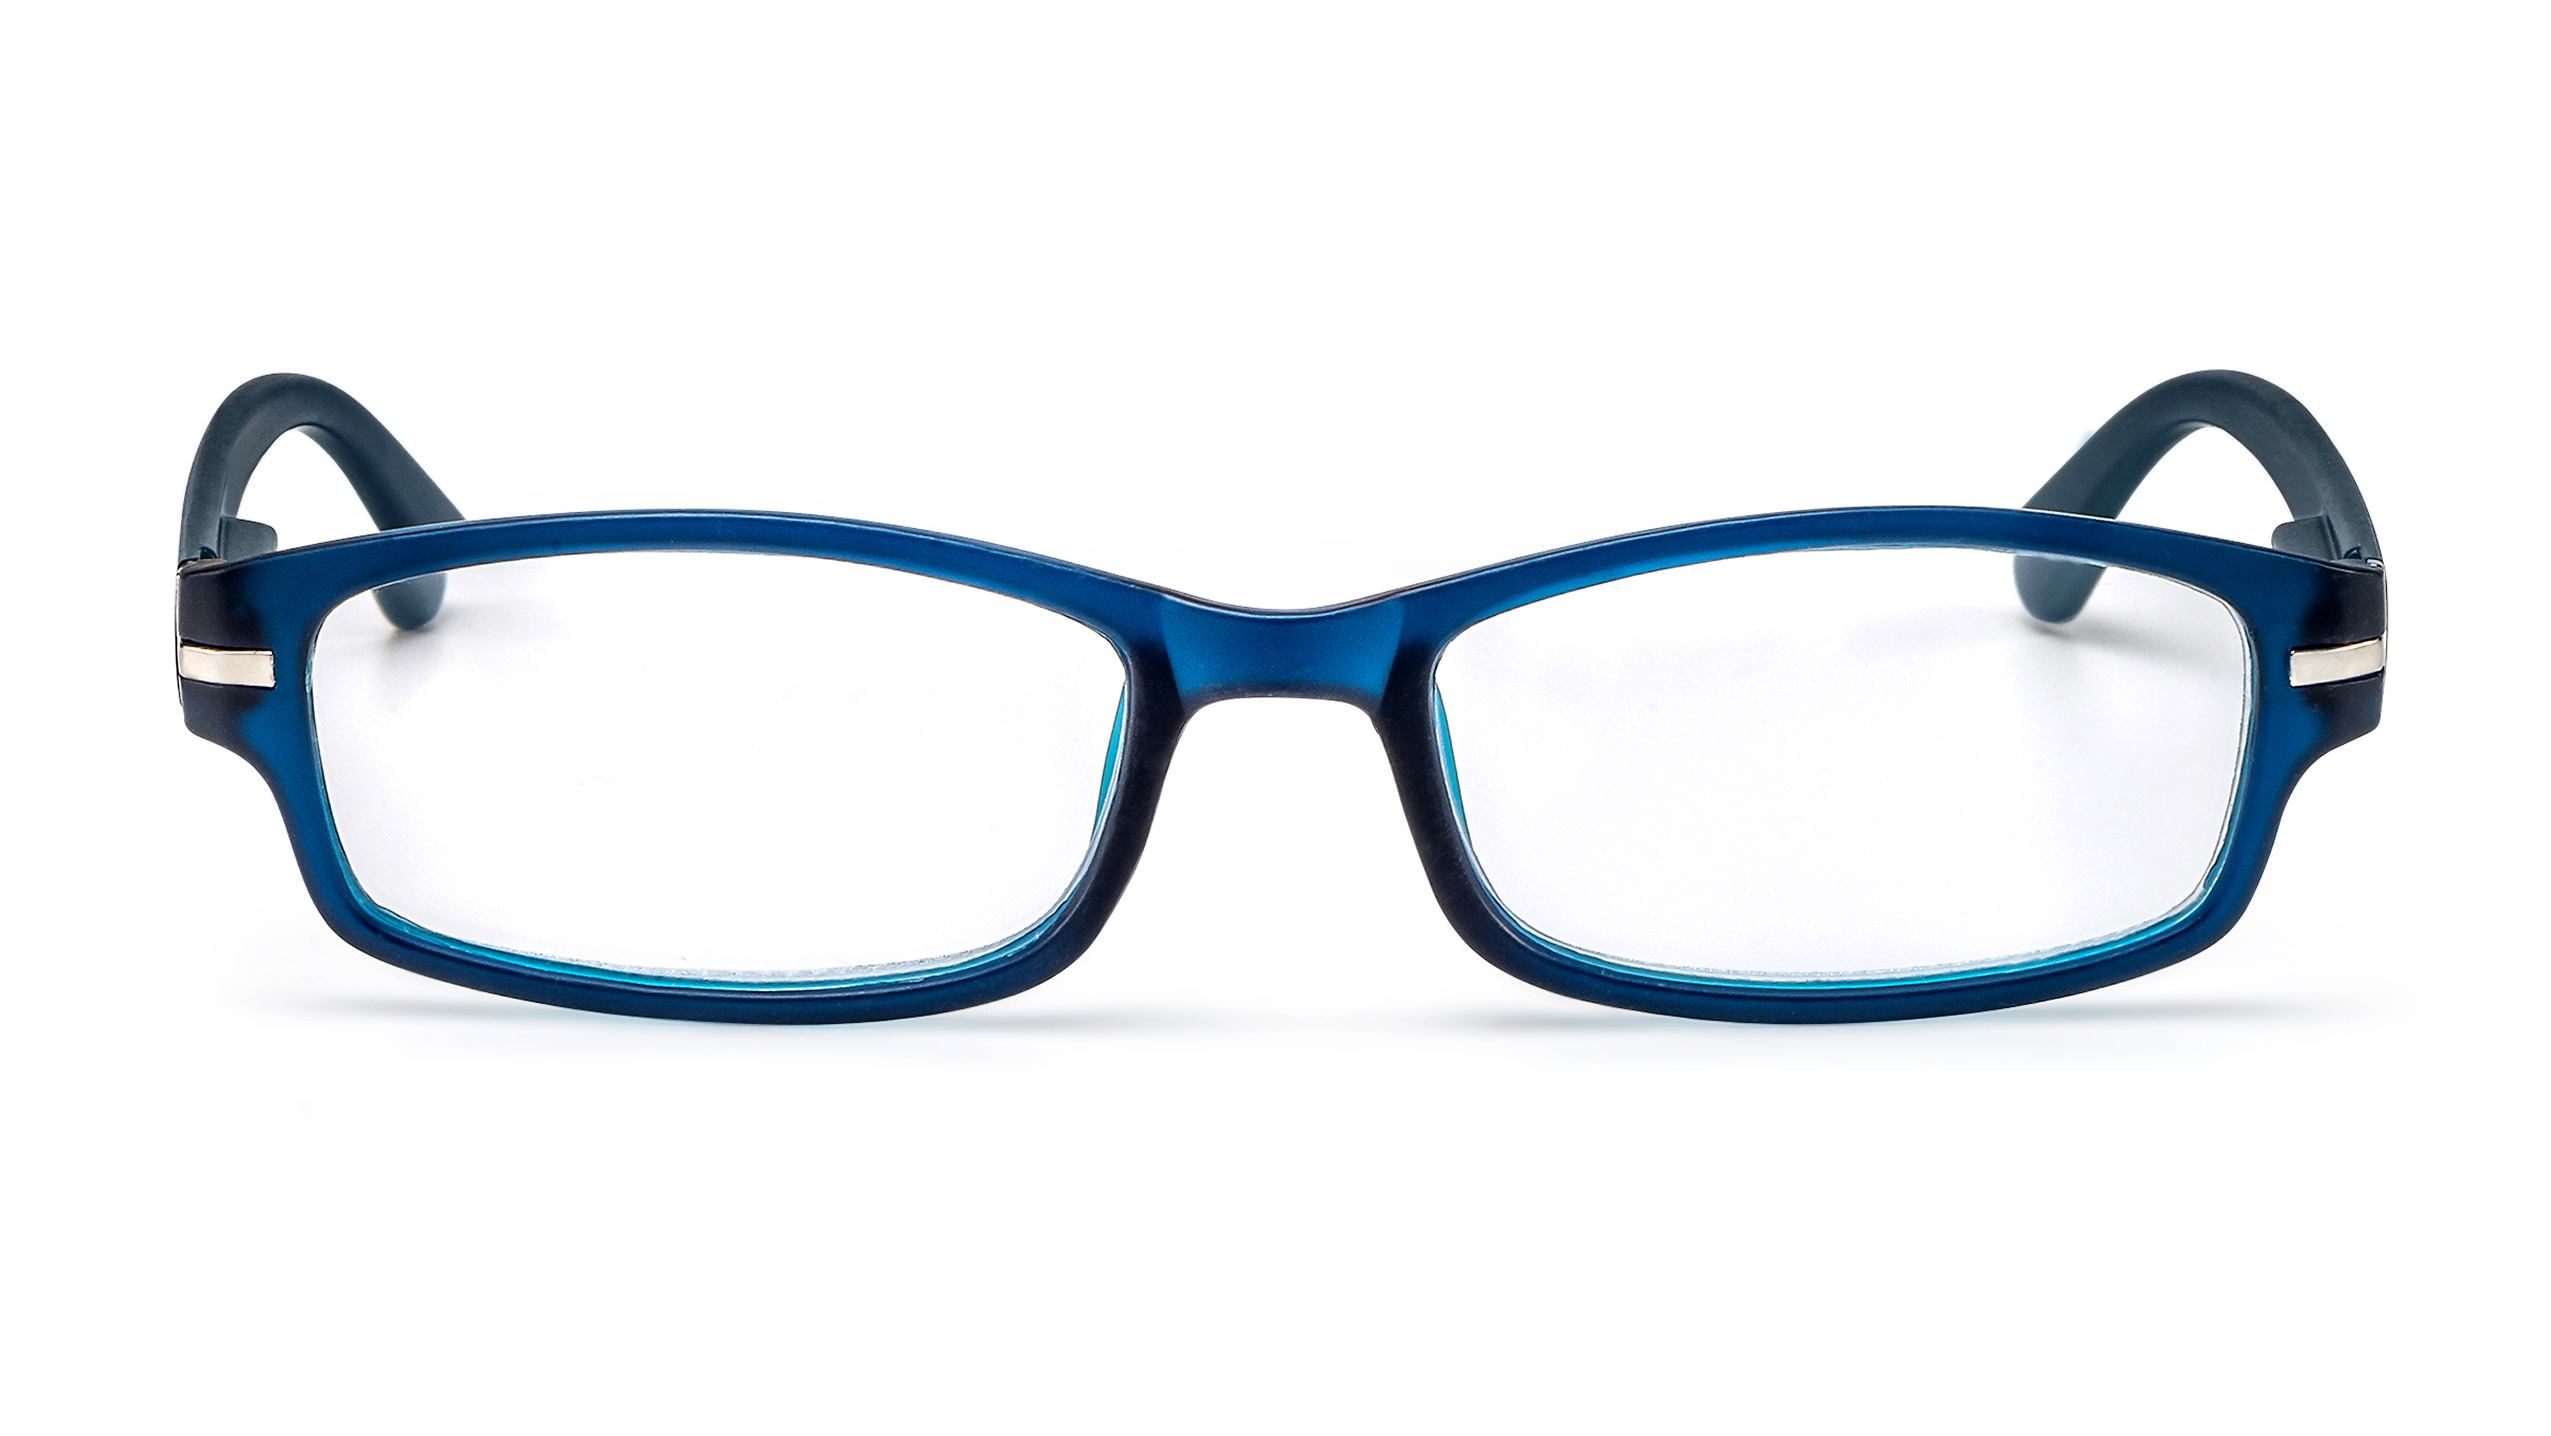 Front view reading glasses Sydney blue